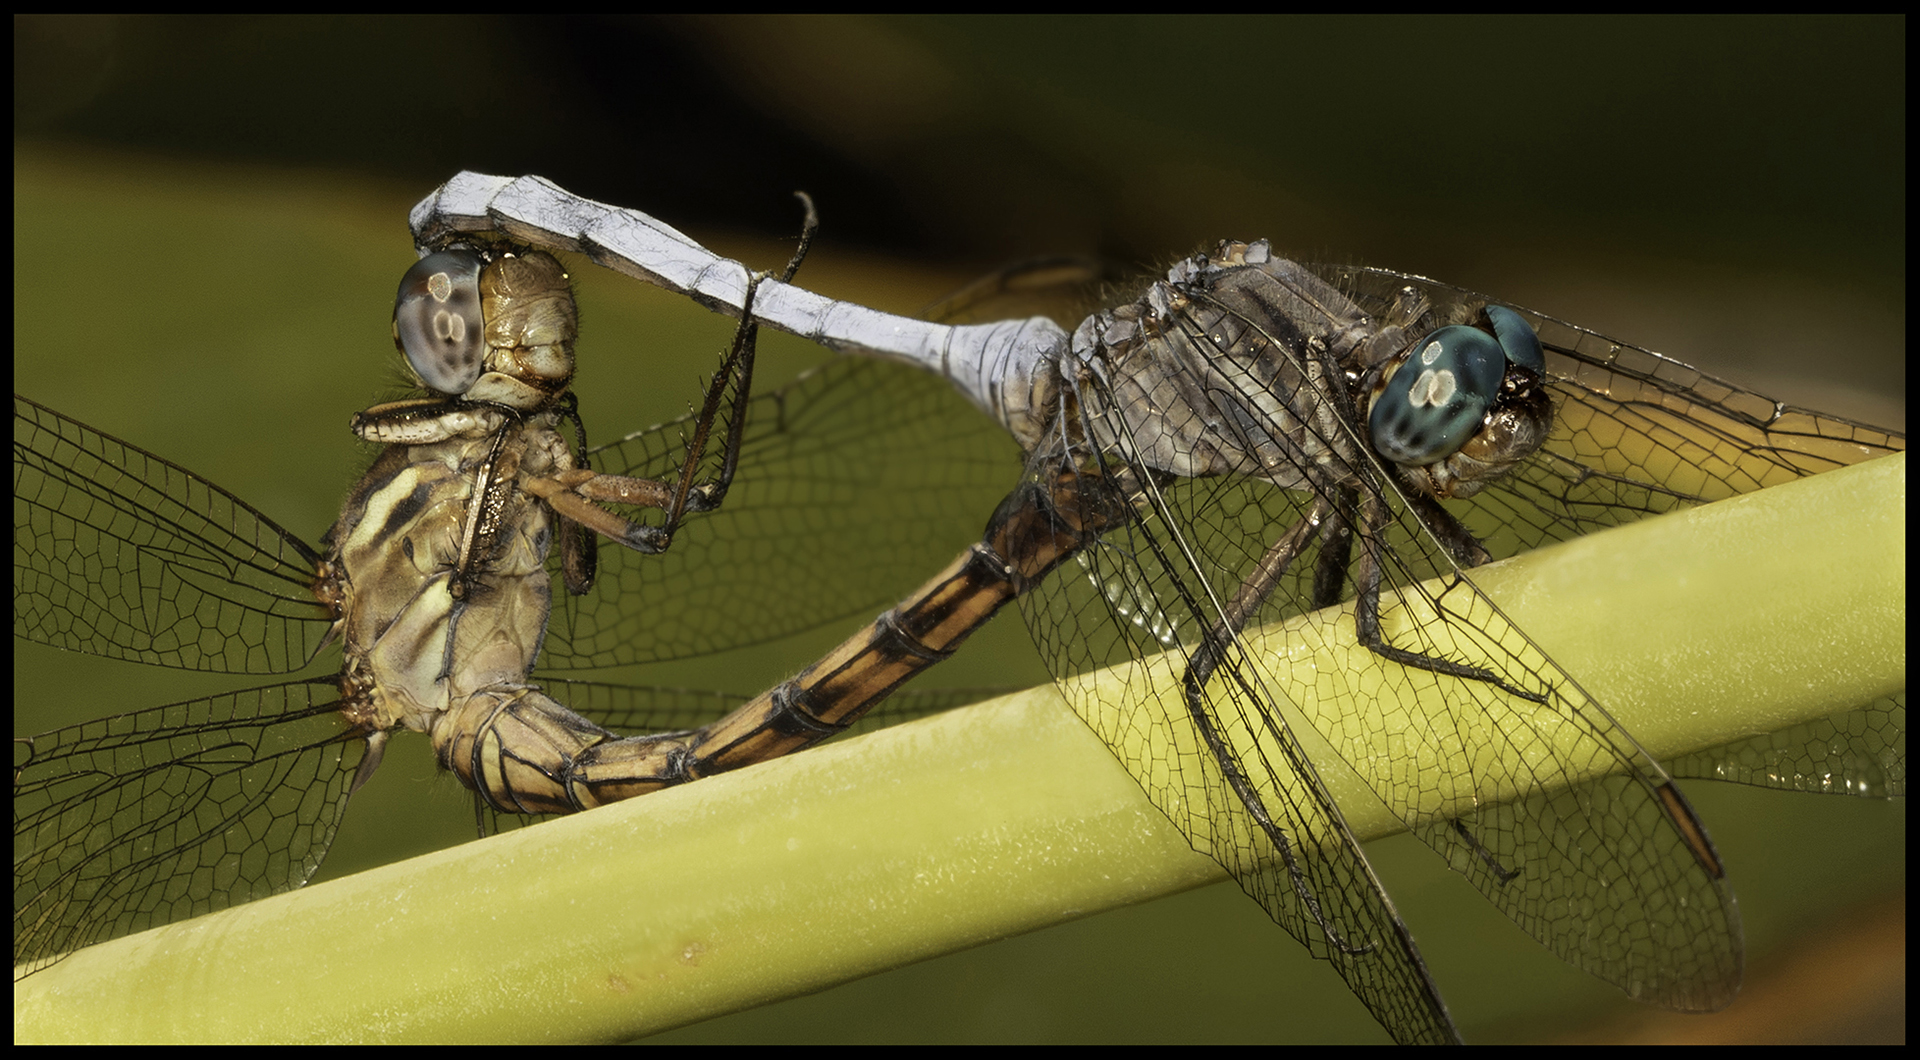 DS001-Mating-Dragonflies-John-Read_1